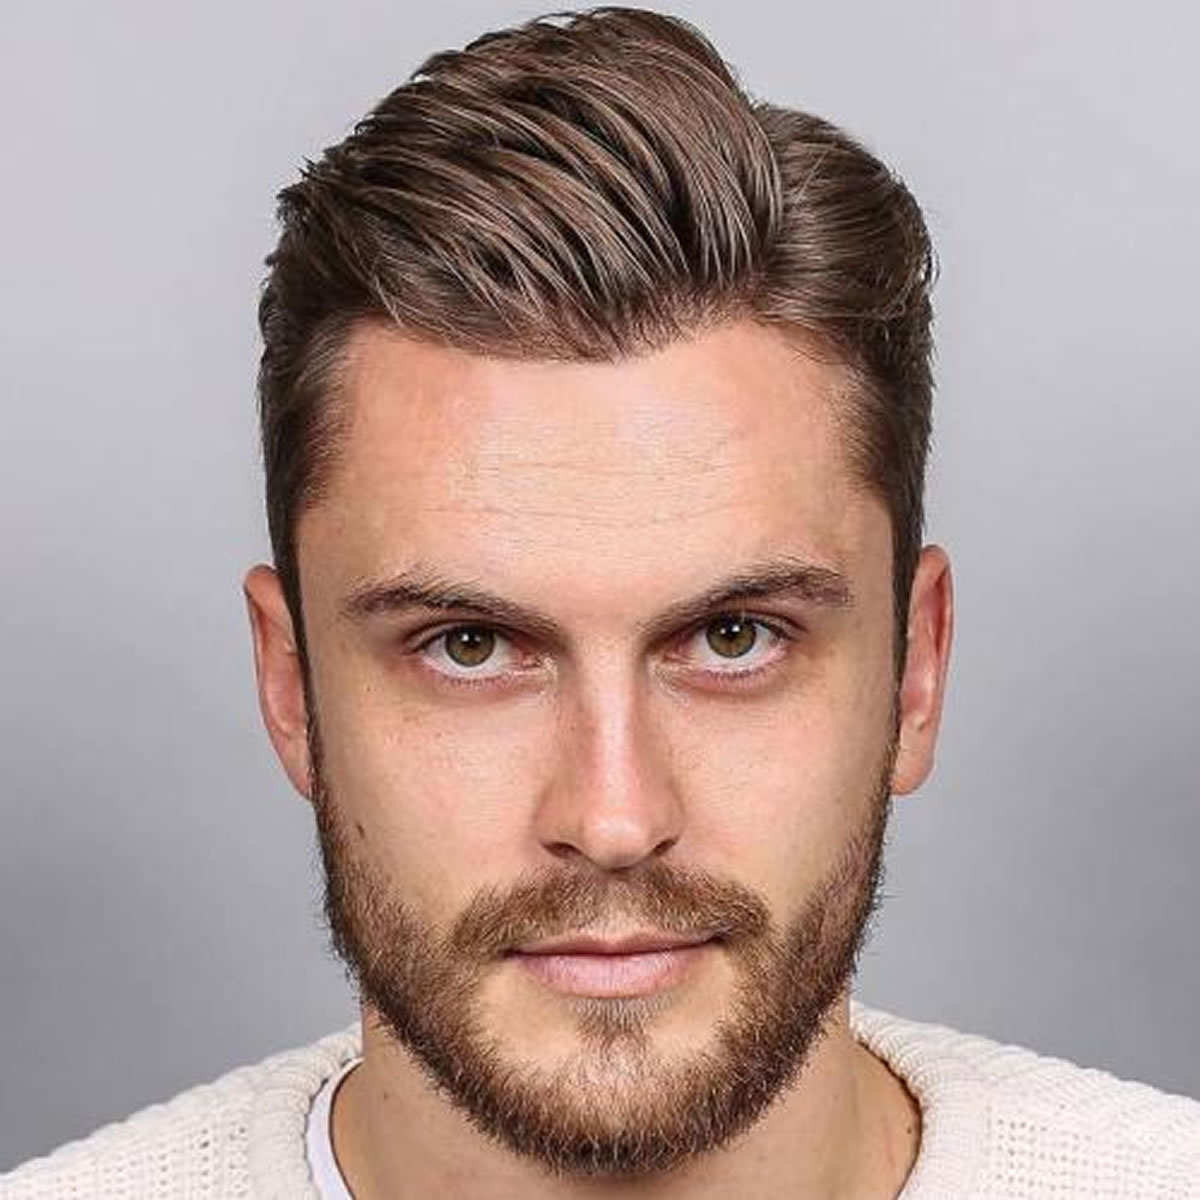 Hairstyles Male  The 2018 hairstyles for men Short and Cuts Hairstyles